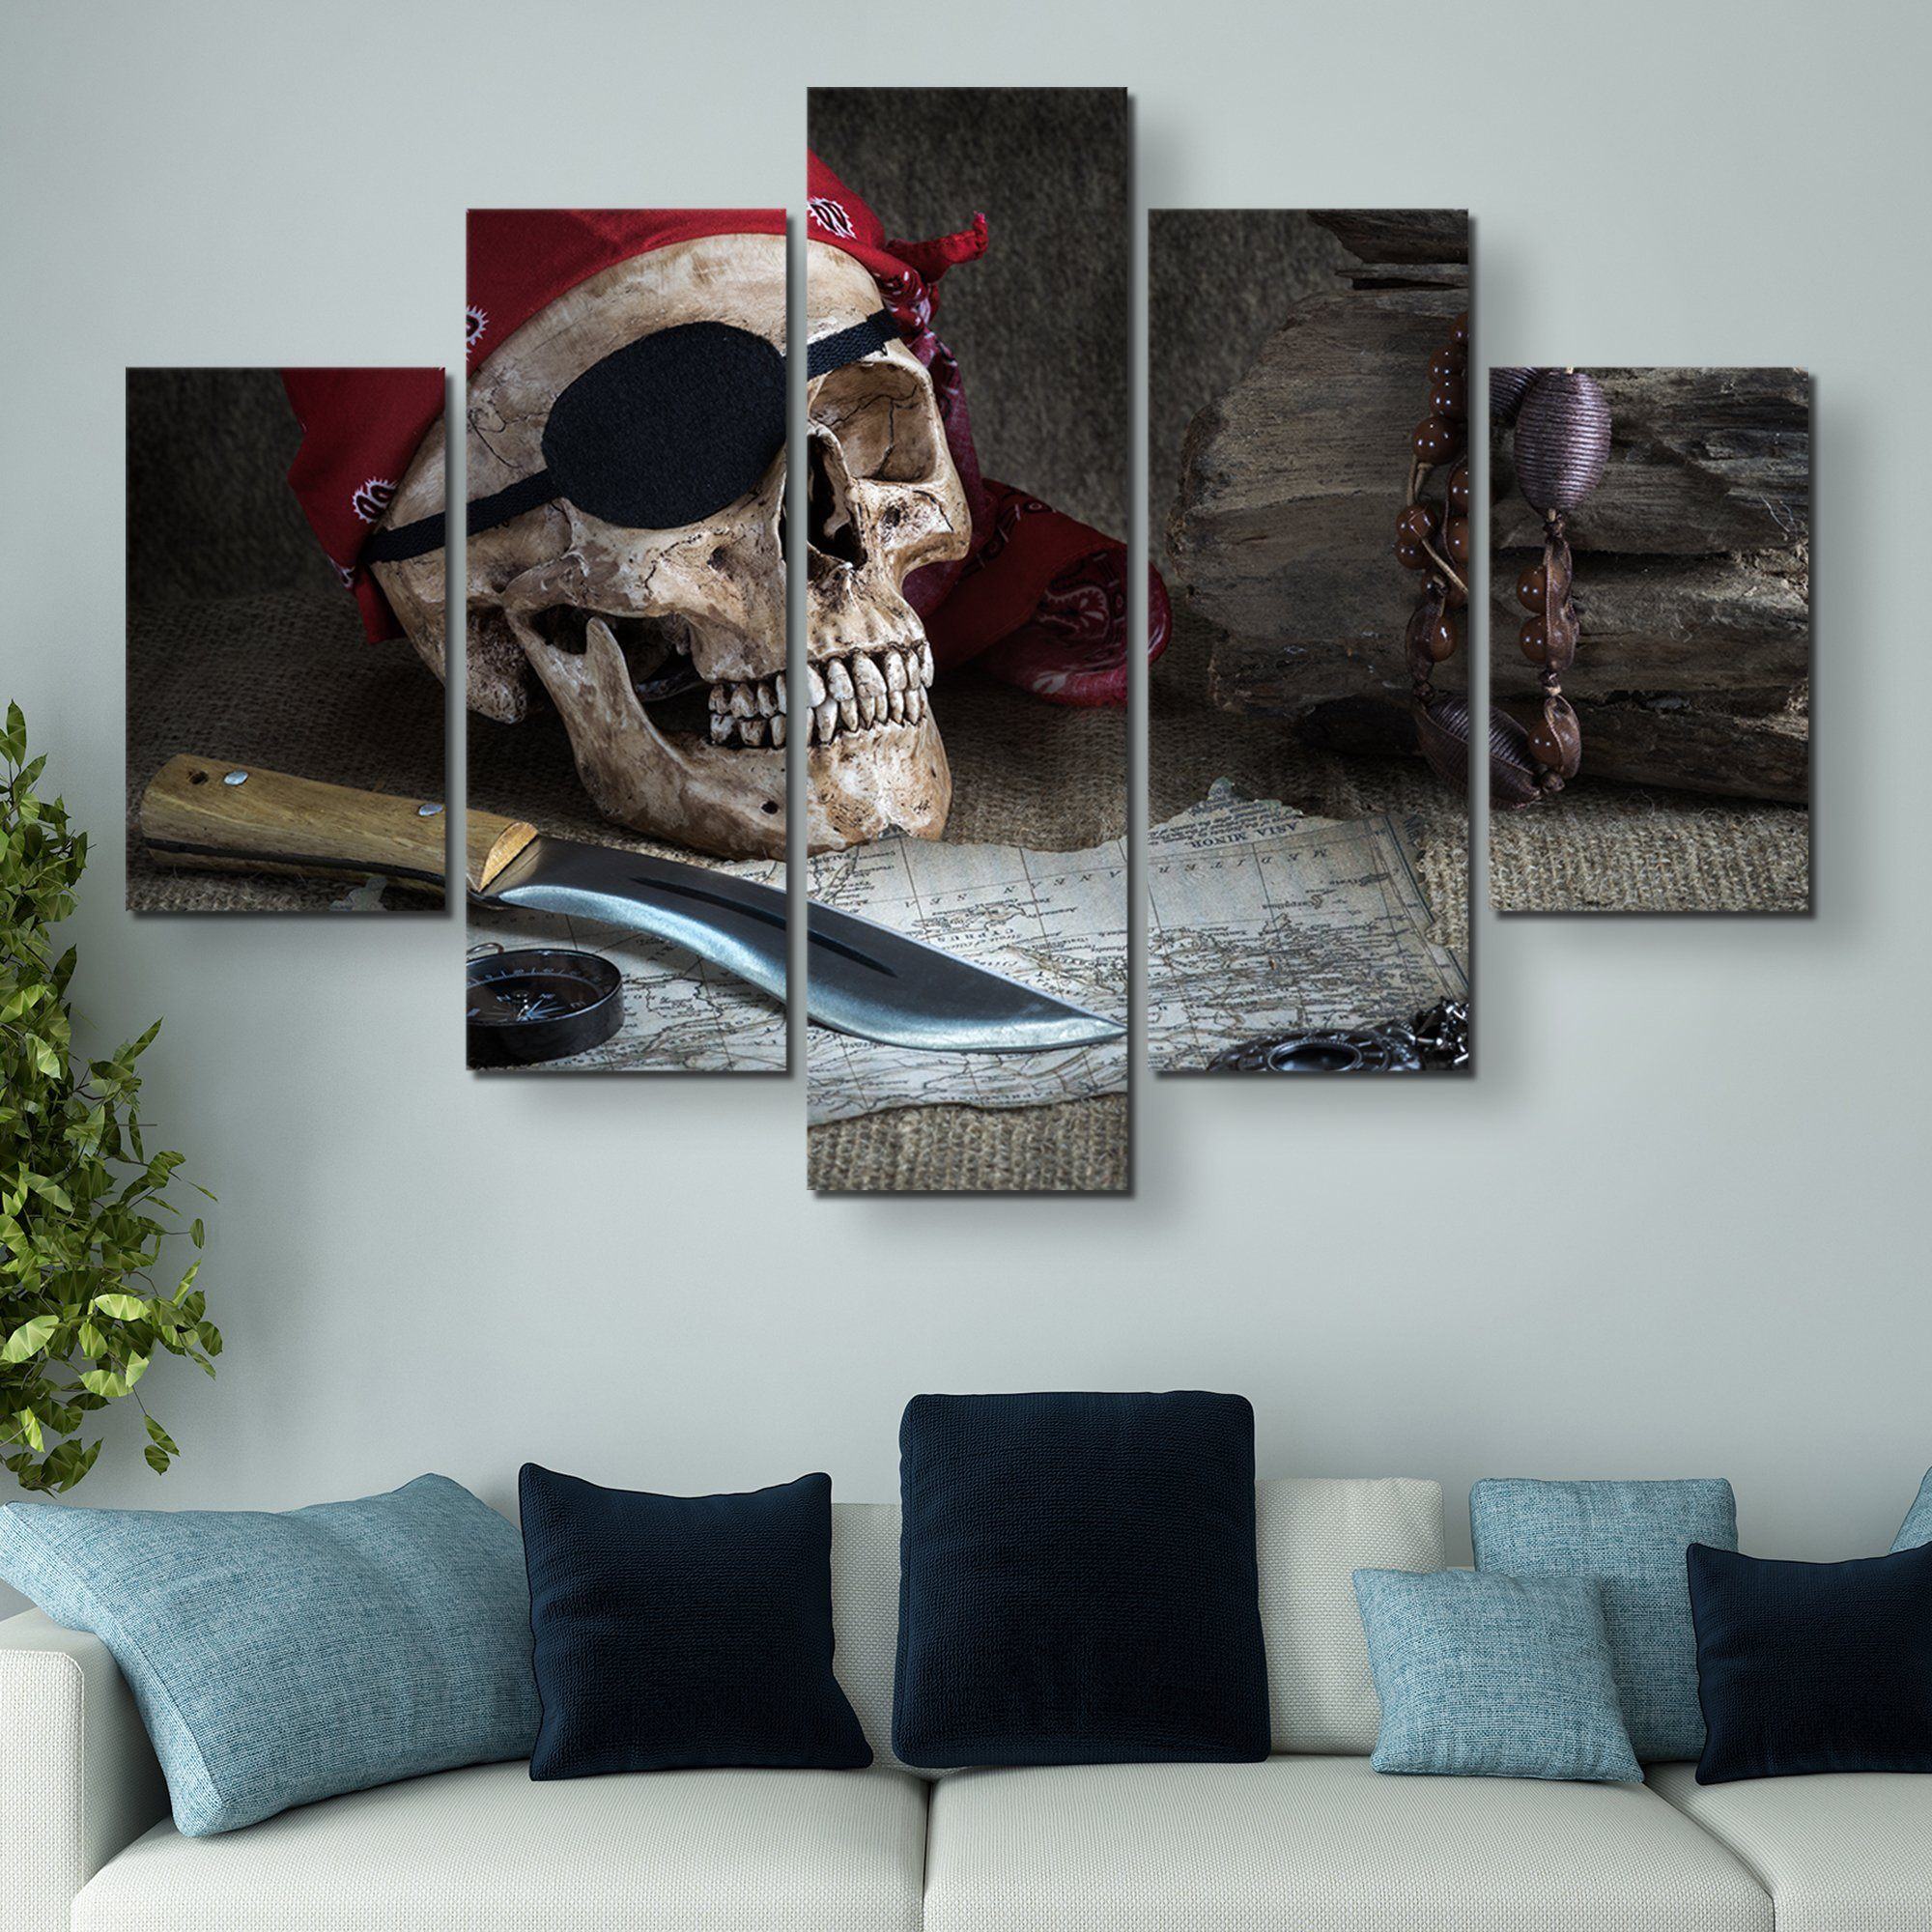 5 piece Still Life wall art